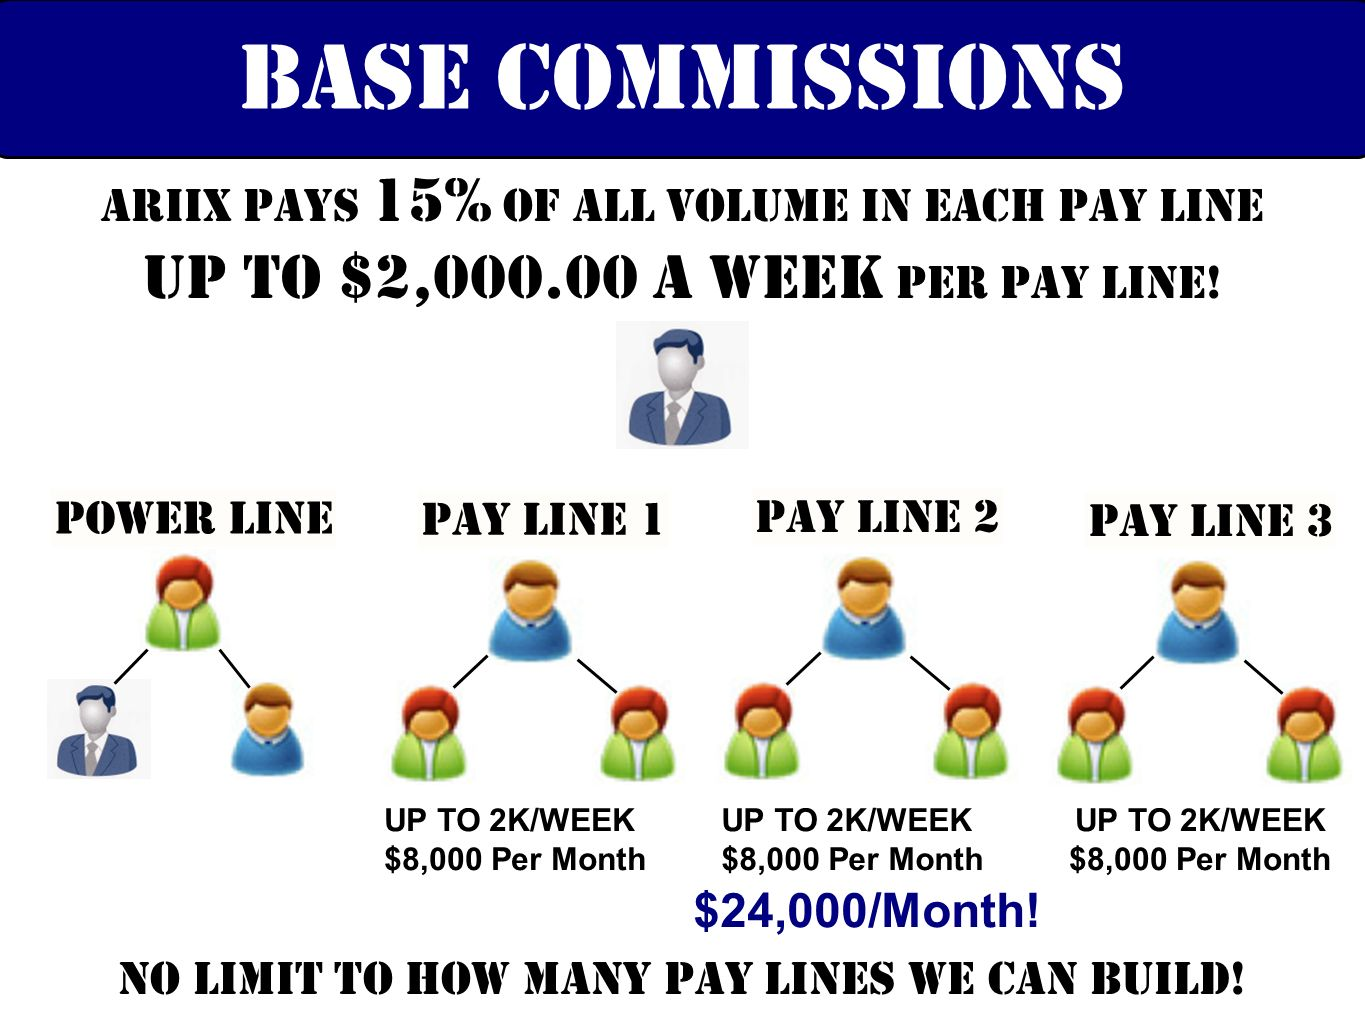 ARIIX pays 15% of all volume in each pay line up to $2,000.00 A Week per pay line! Base commissions Power Line PAY LINE 1 PAY LINE 2 PAY LINE 3 UP TO